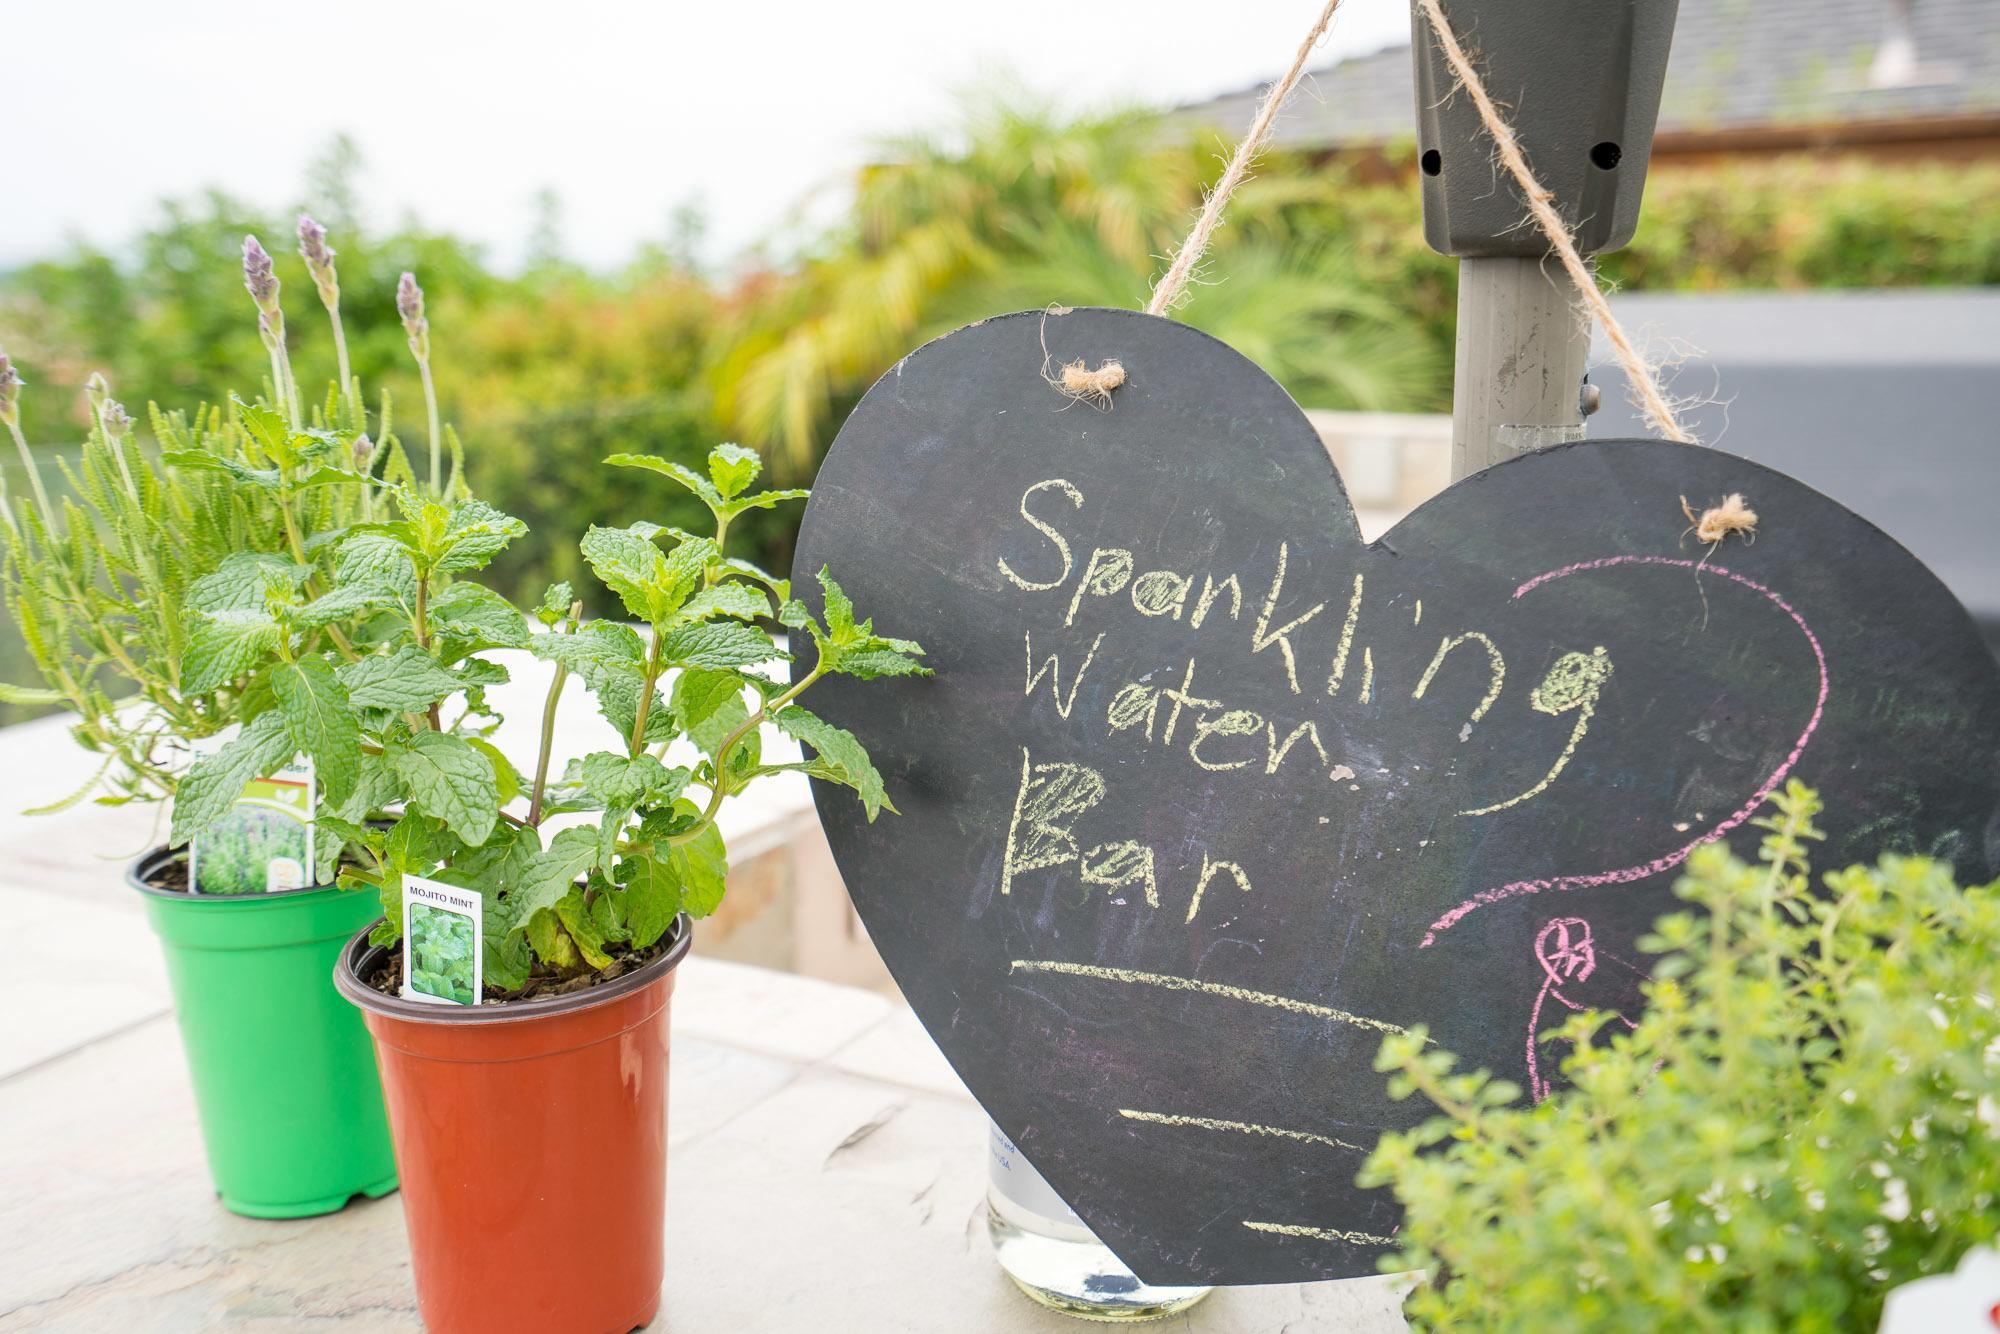 Pluck herbs and put them in sparkling water drinks!